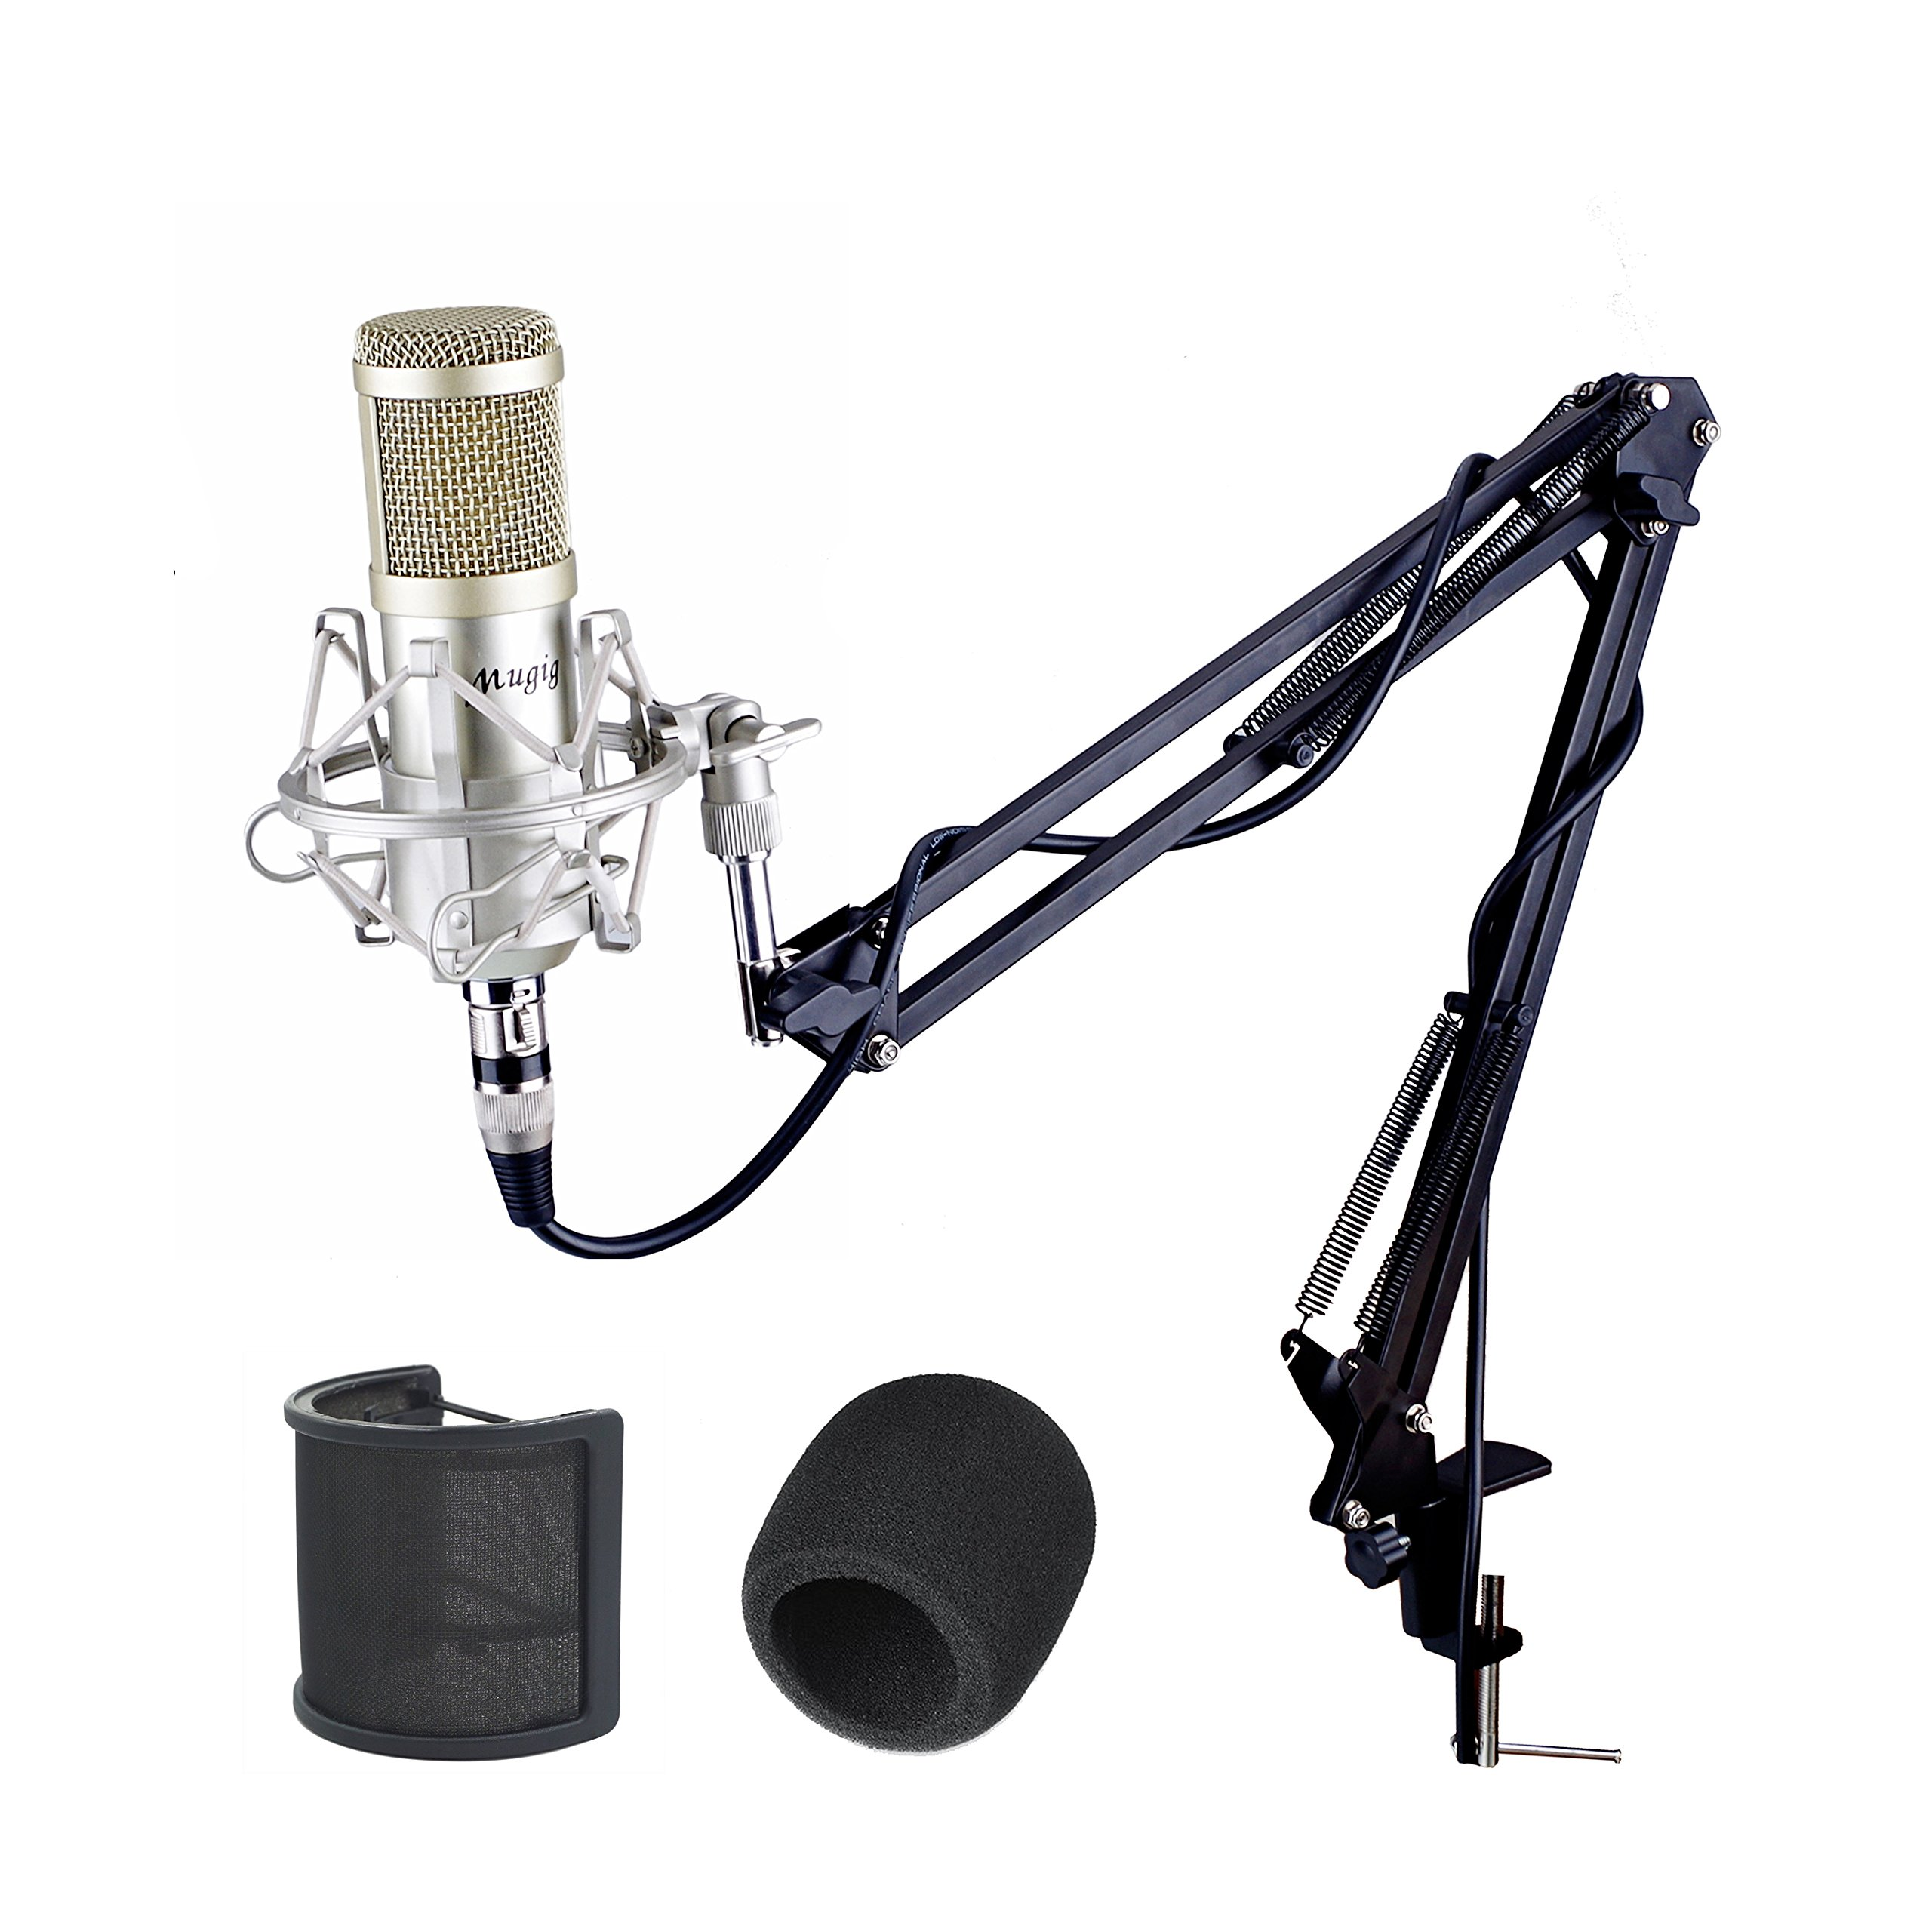 Mugig Condenser Mic, Professional Studio Microphone with Microphone Stand, XLR Cable, Shock Mount and Pop Filter for Recording, Singing, Podcast, Games by Mugig